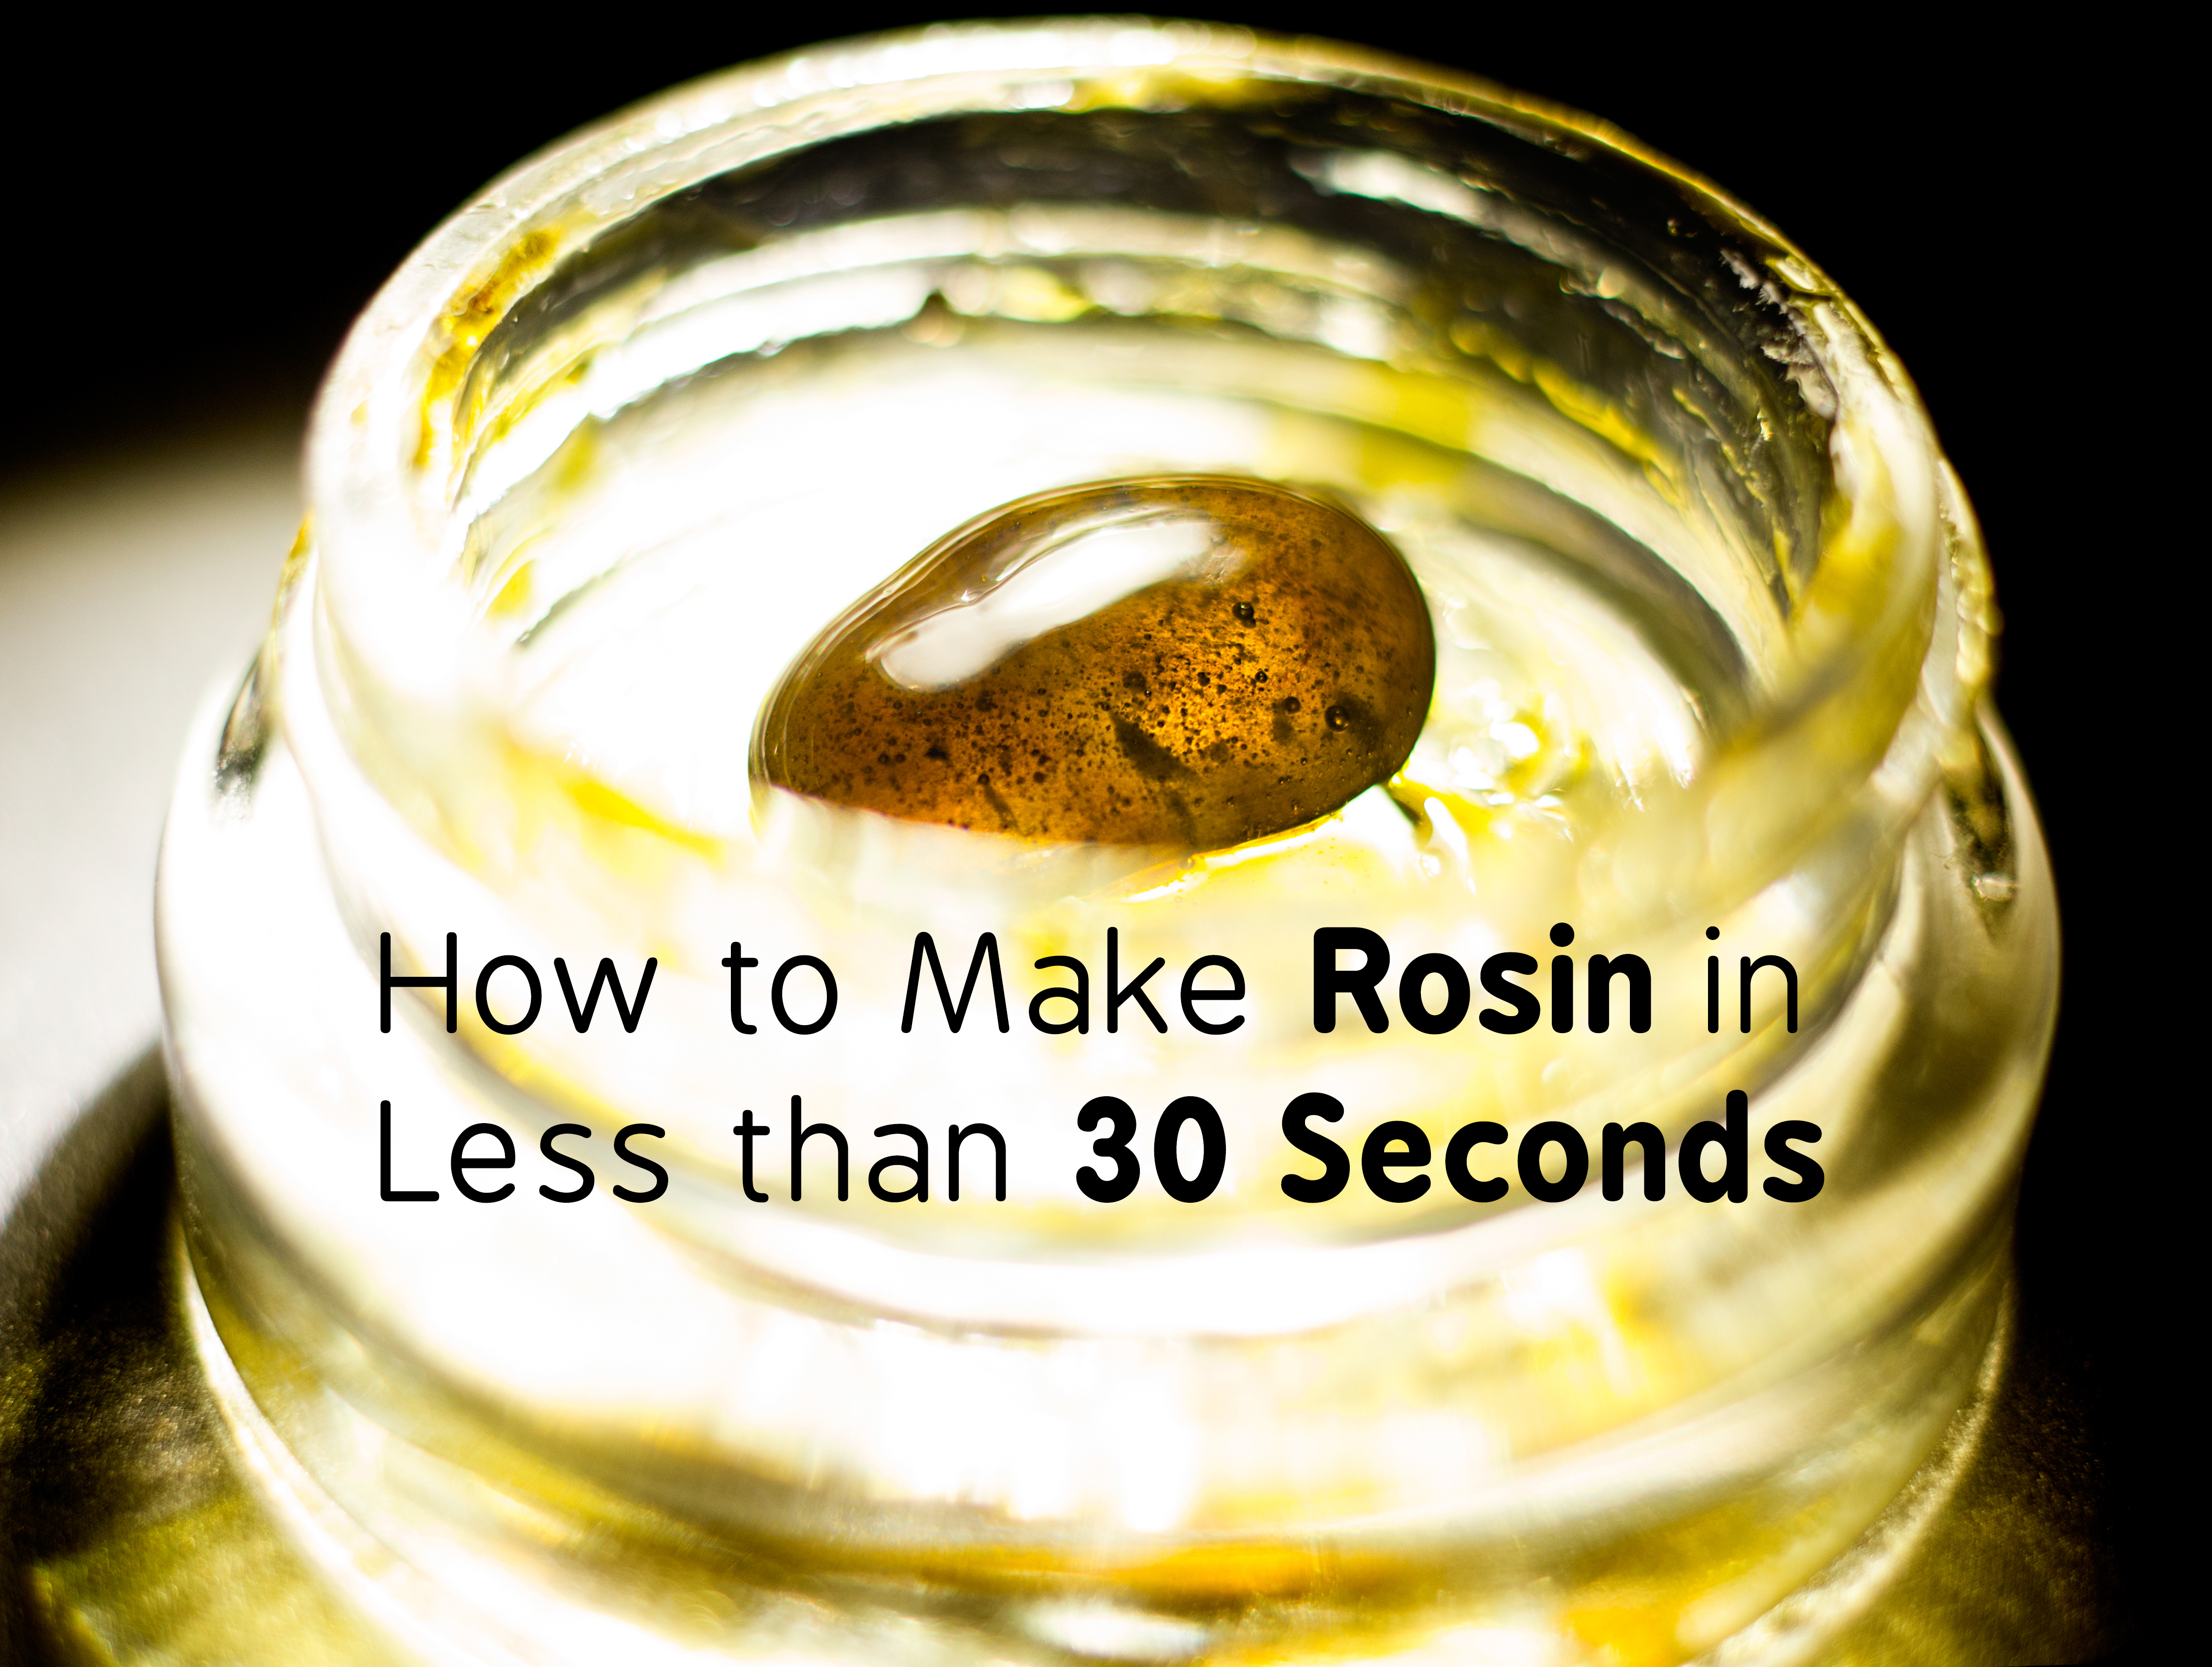 how_to_make_rosin